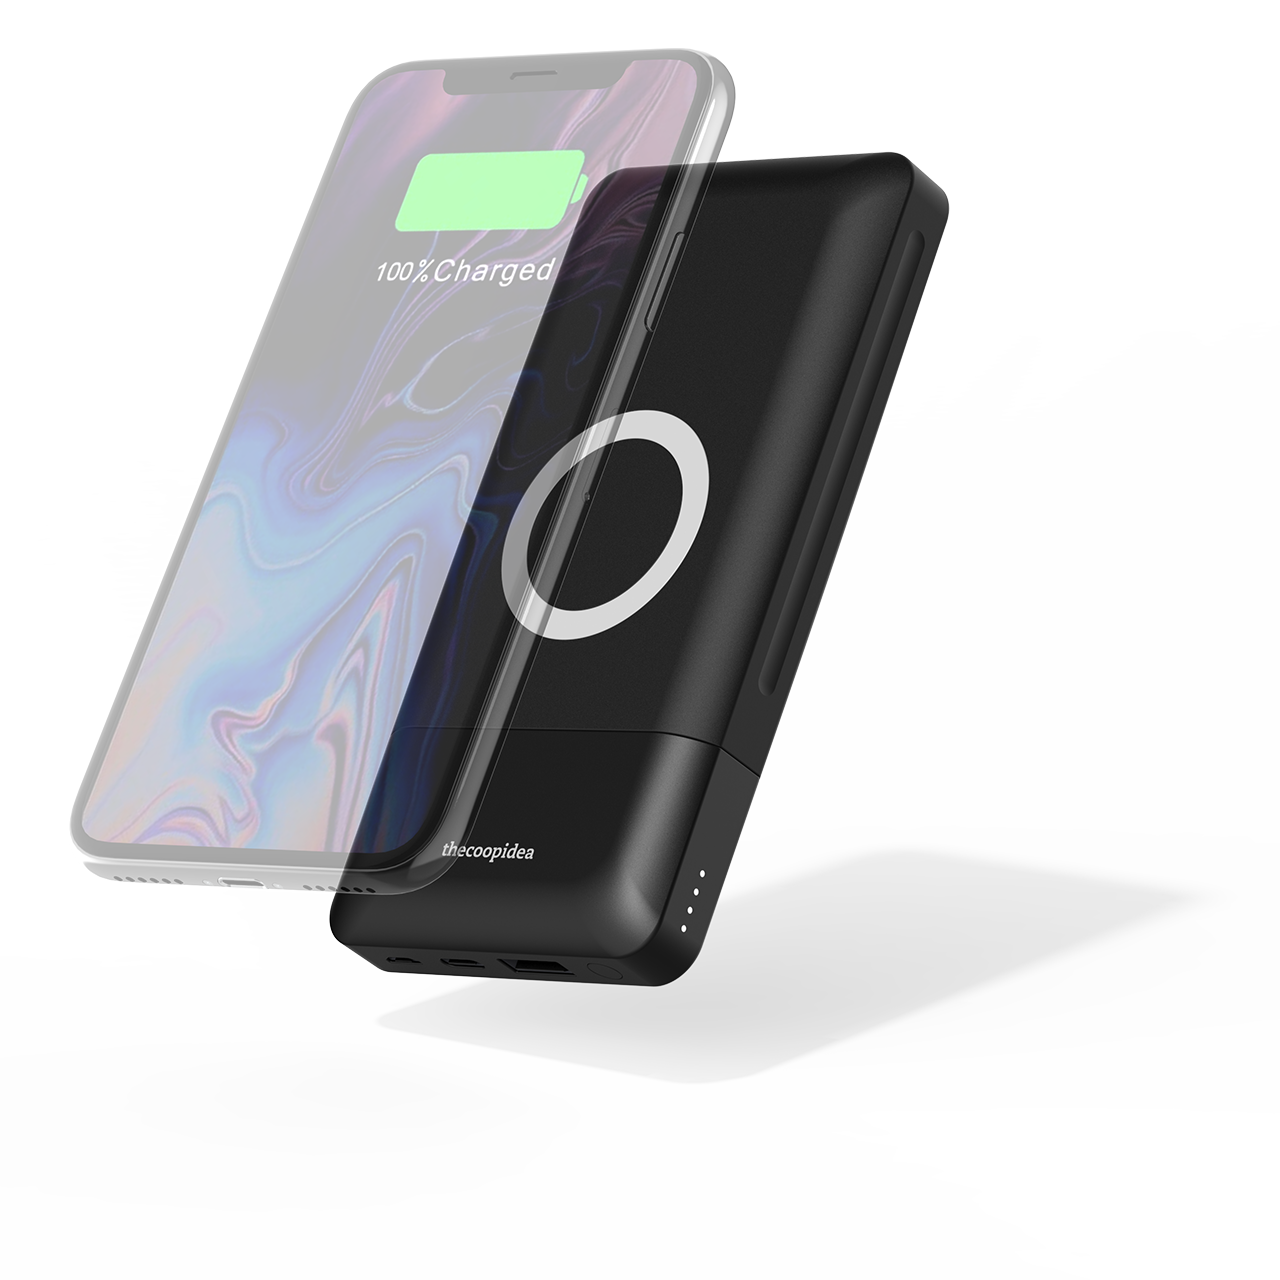 thecoopidea - Stack 18W PD + 10W Wireless Charging 10000mAh Powerbank